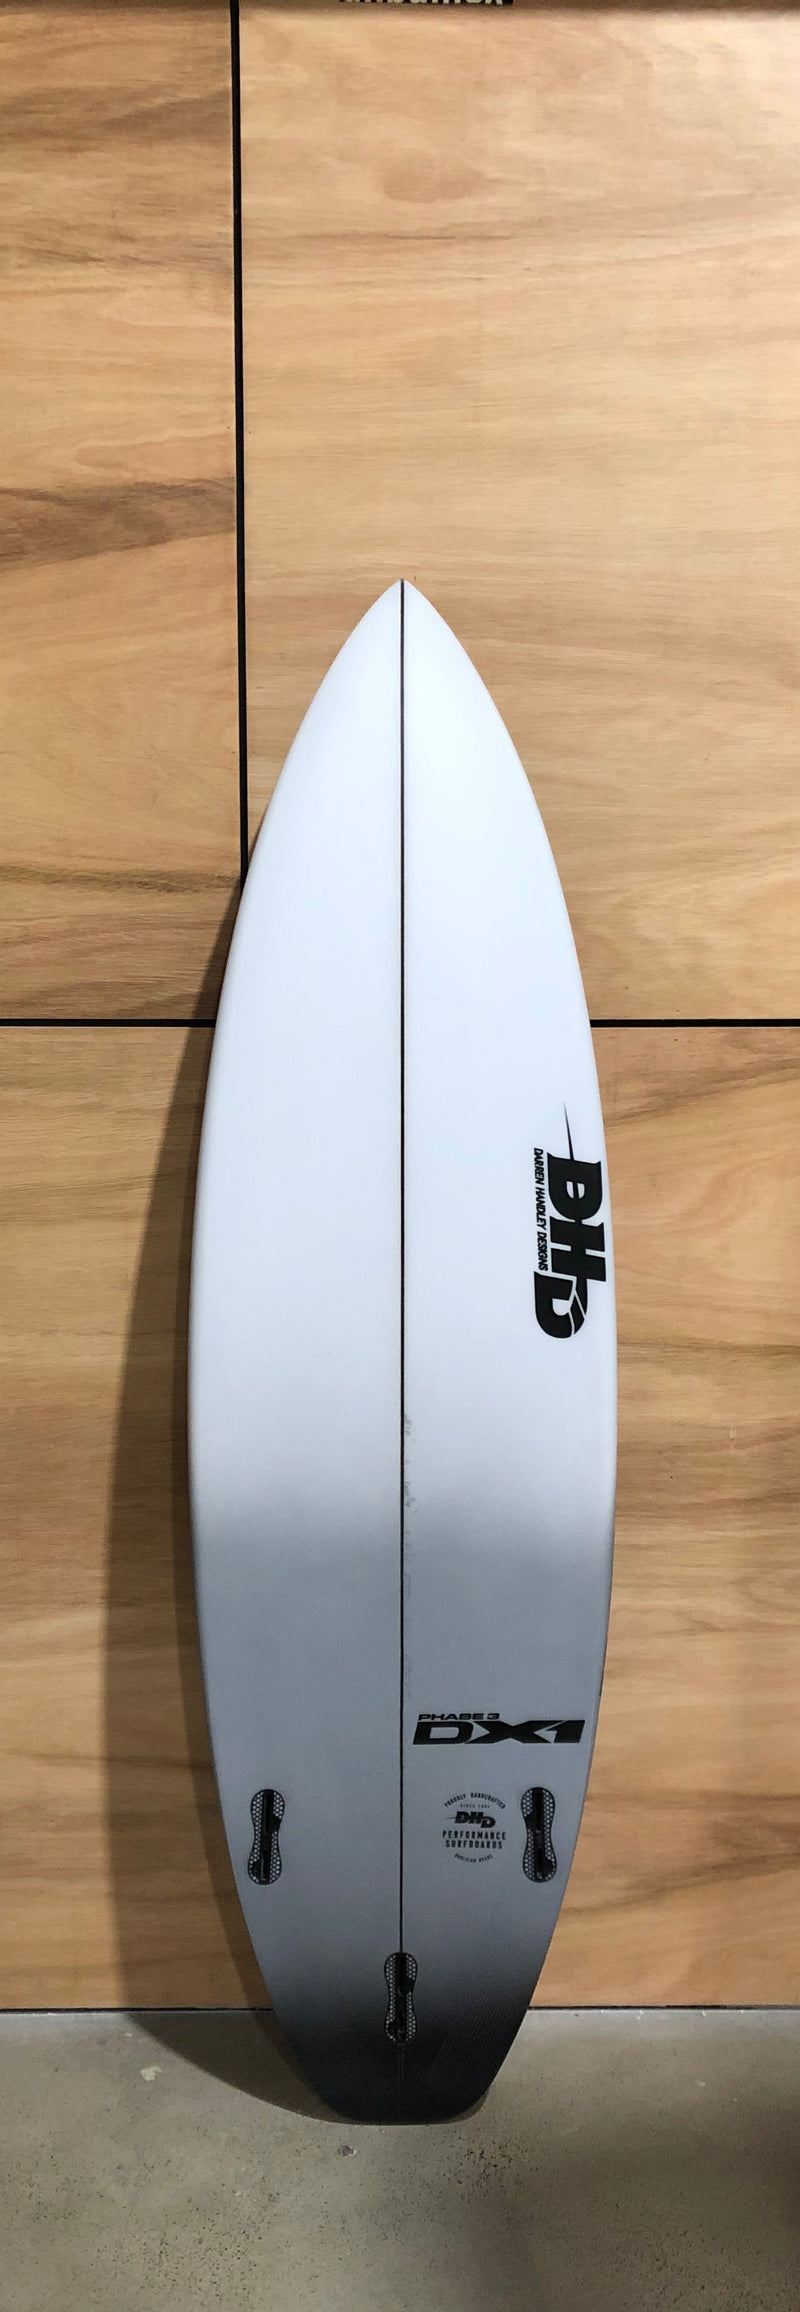 DHD DX1 Phase 3 - Board Store DHDSurfboard